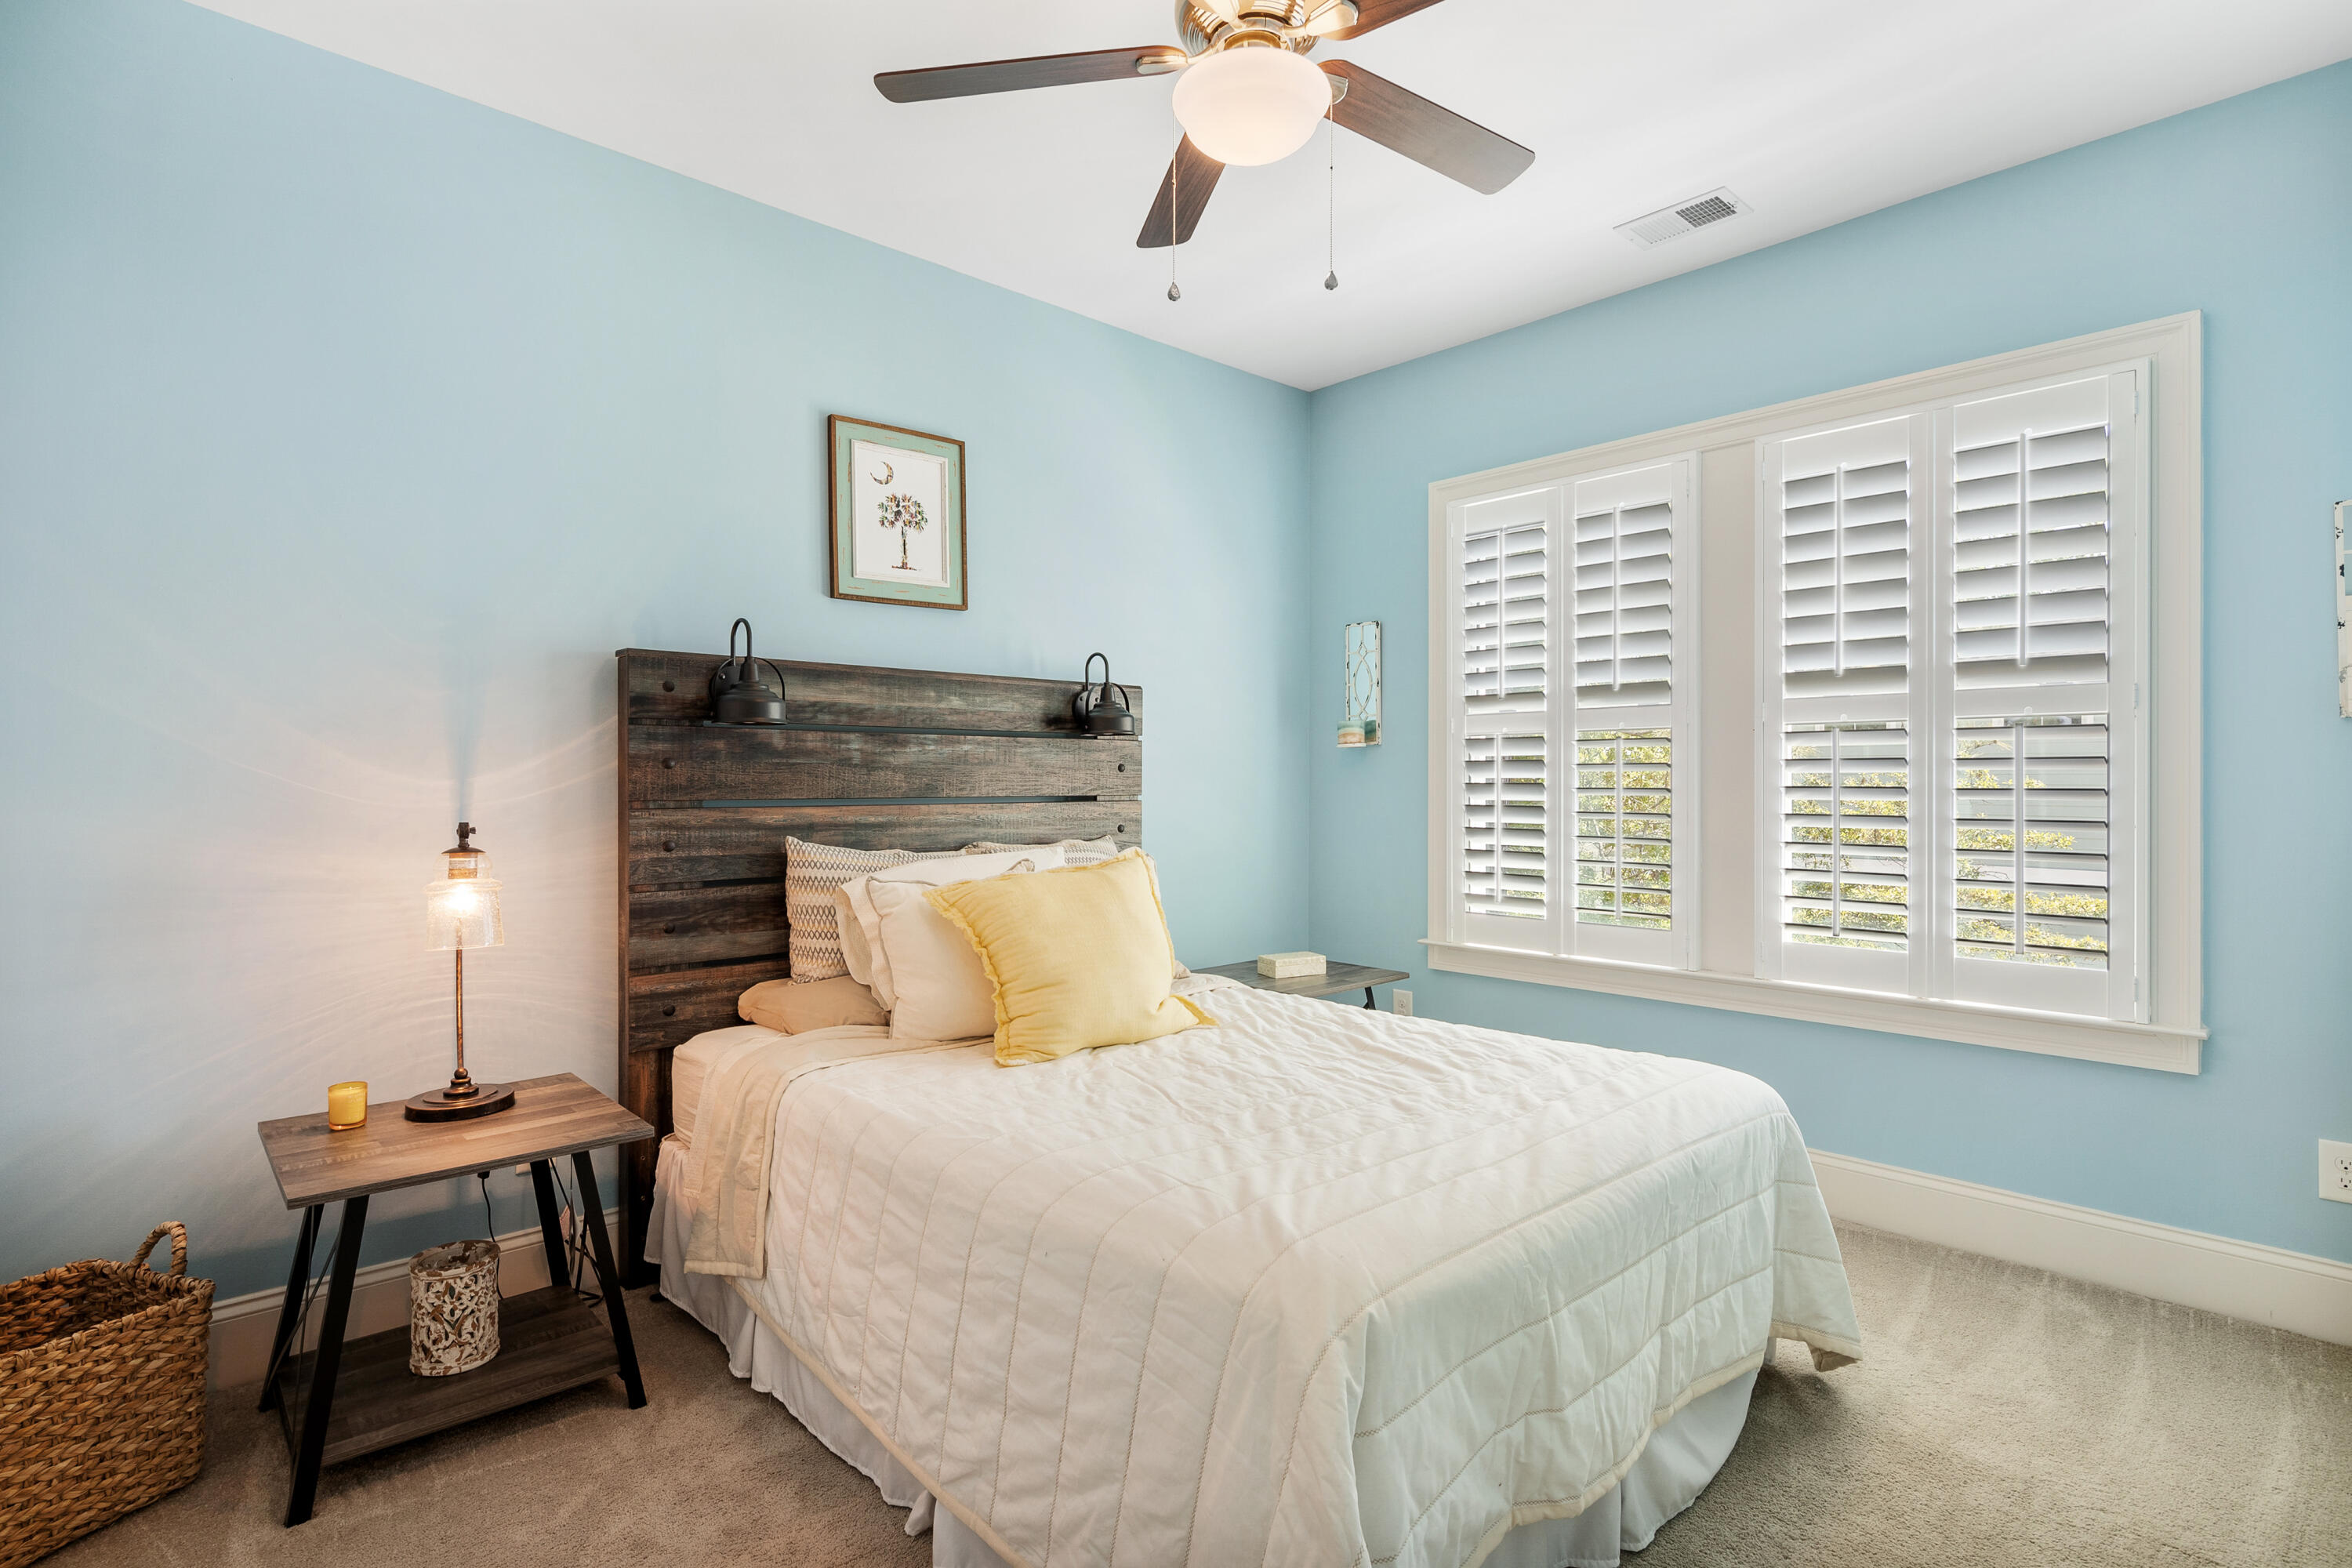 Rivertowne Country Club Homes For Sale - 1633 Rivertowne Country Club, Mount Pleasant, SC - 12